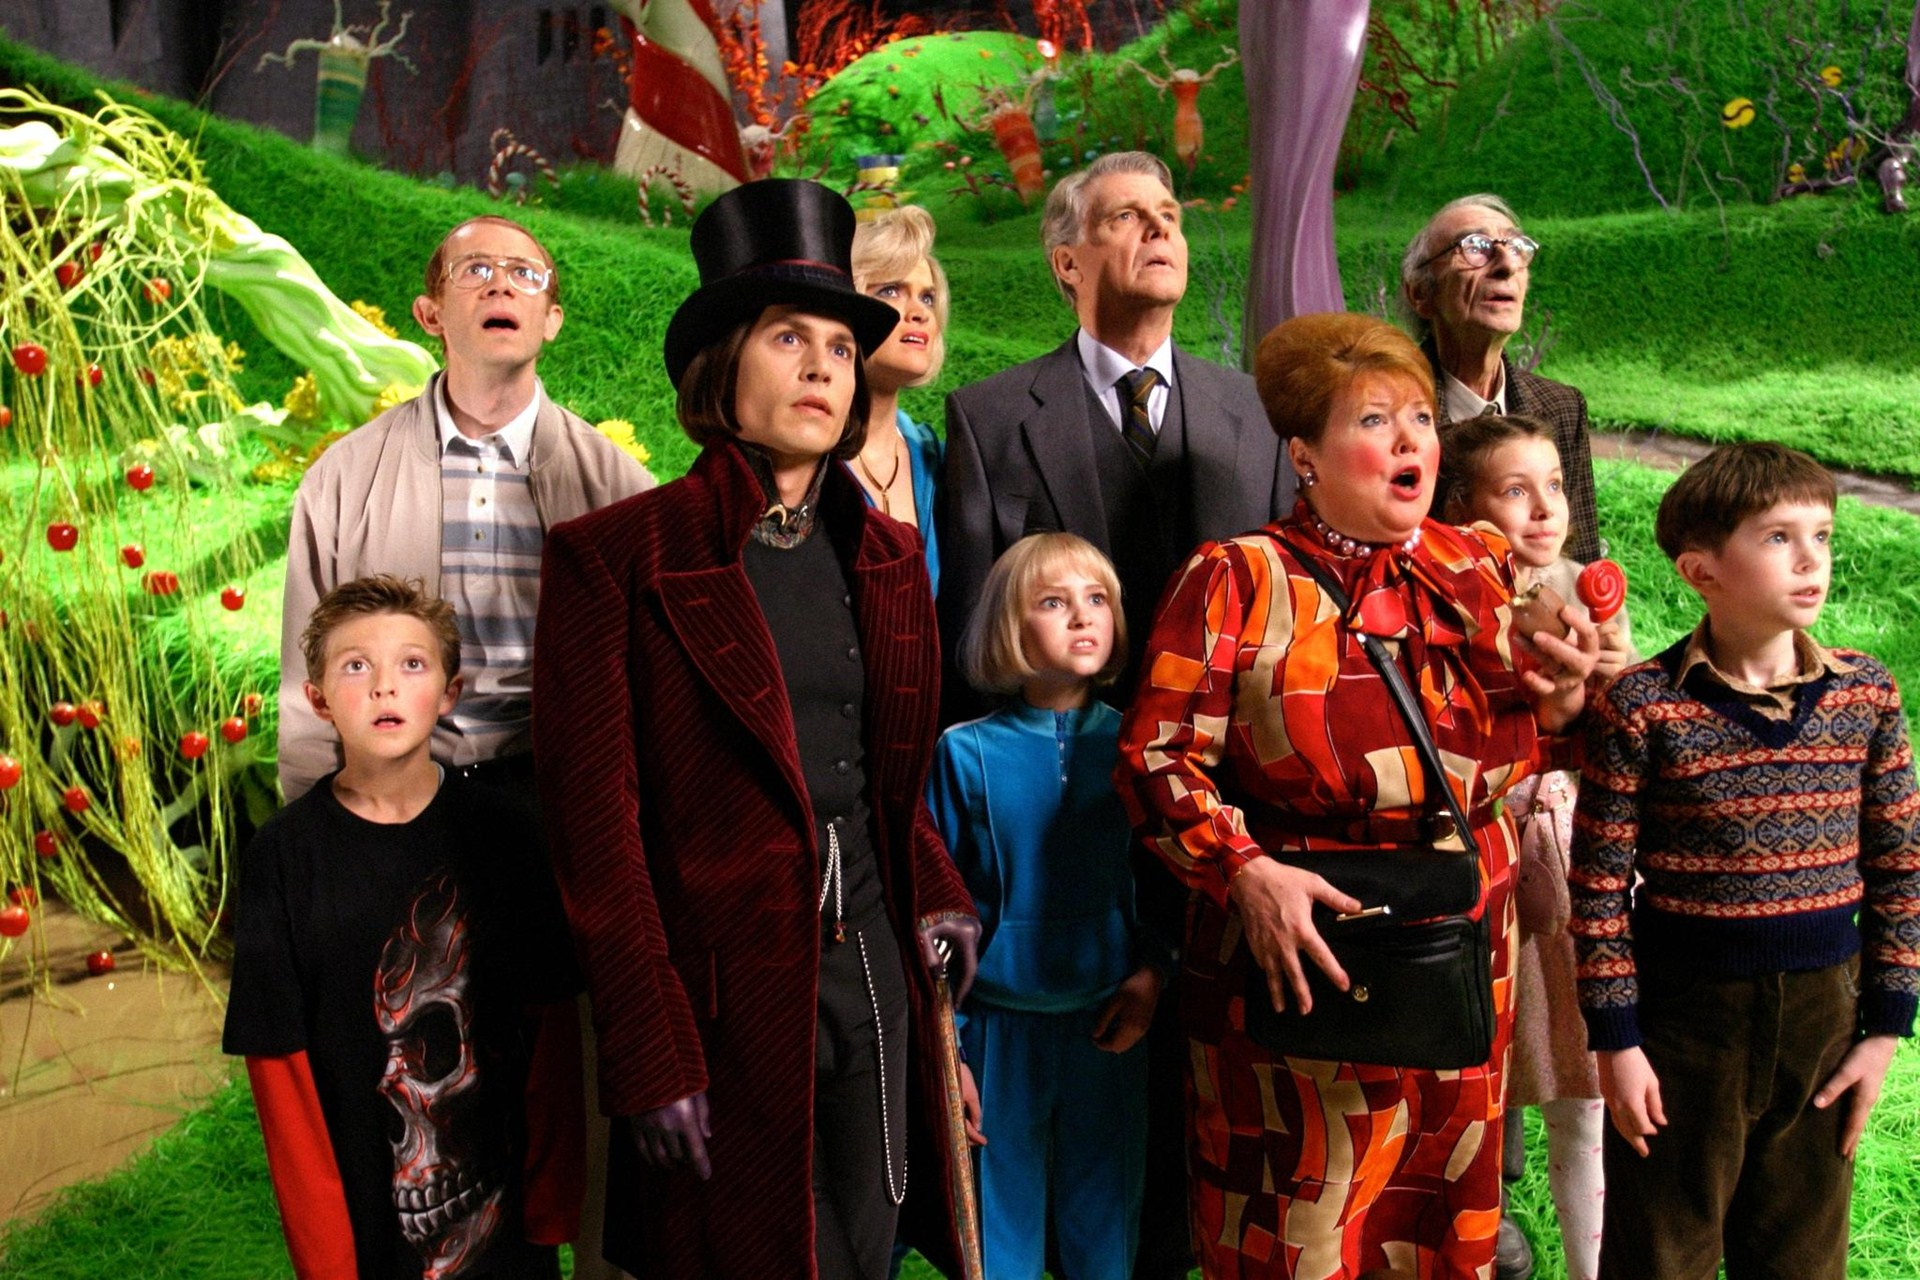 ranking roald dahl s films where does the bfg fit charlie and the chocolate factory